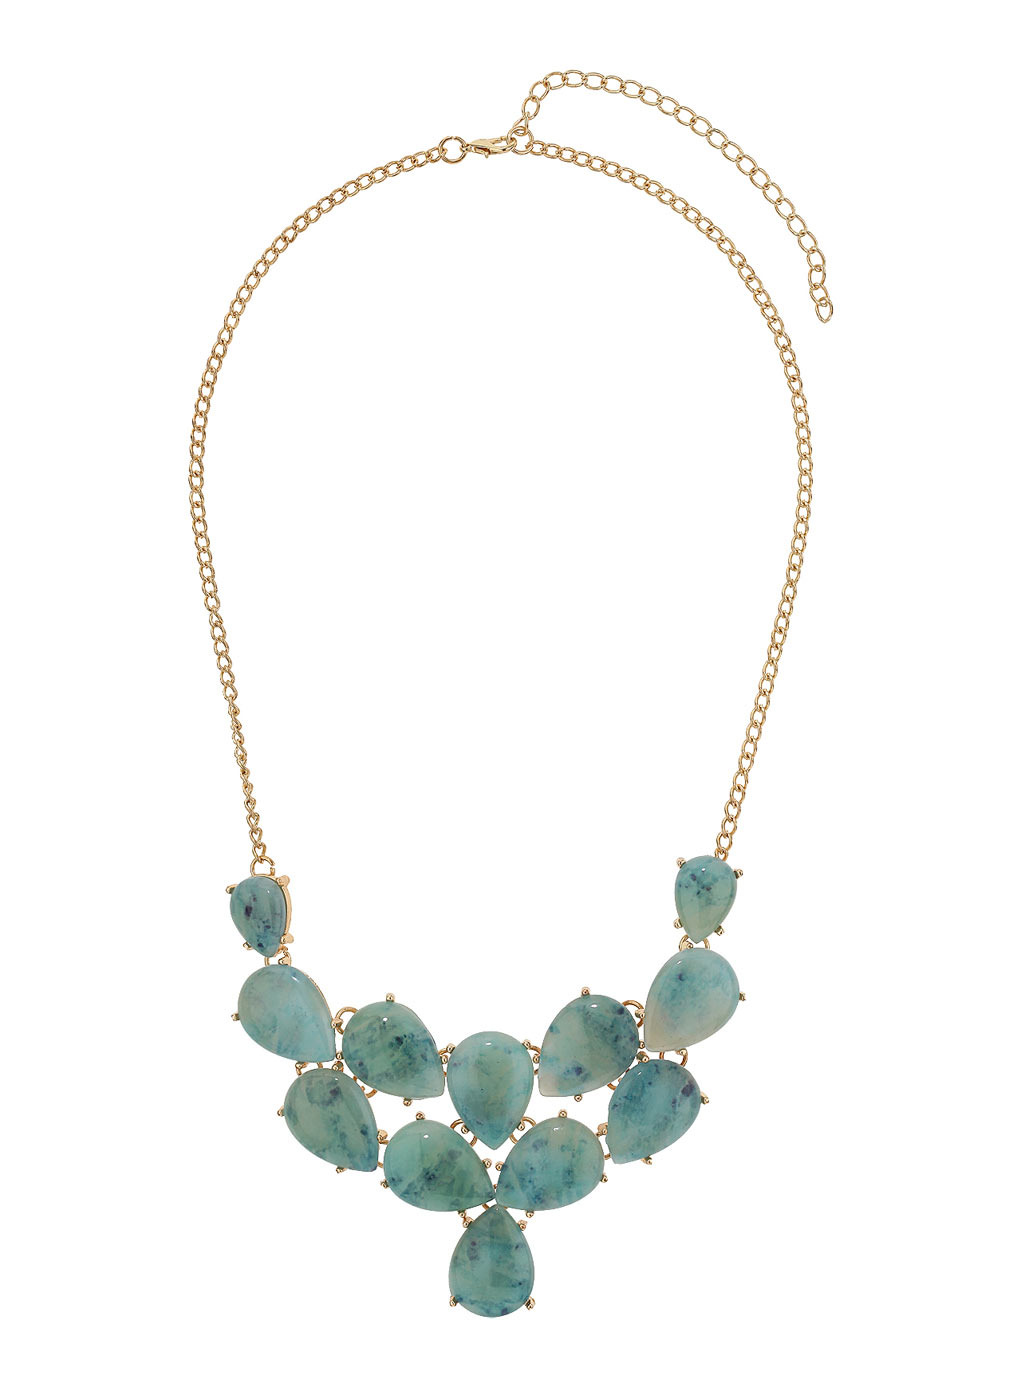 Green Tear Drop Collar Necklace - predominant colour: emerald green; secondary colour: gold; occasions: casual, evening, occasion; length: mid; size: standard; material: chain/metal; finish: metallic; embellishment: jewels/stone; style: bib/statement; season: s/s 2014